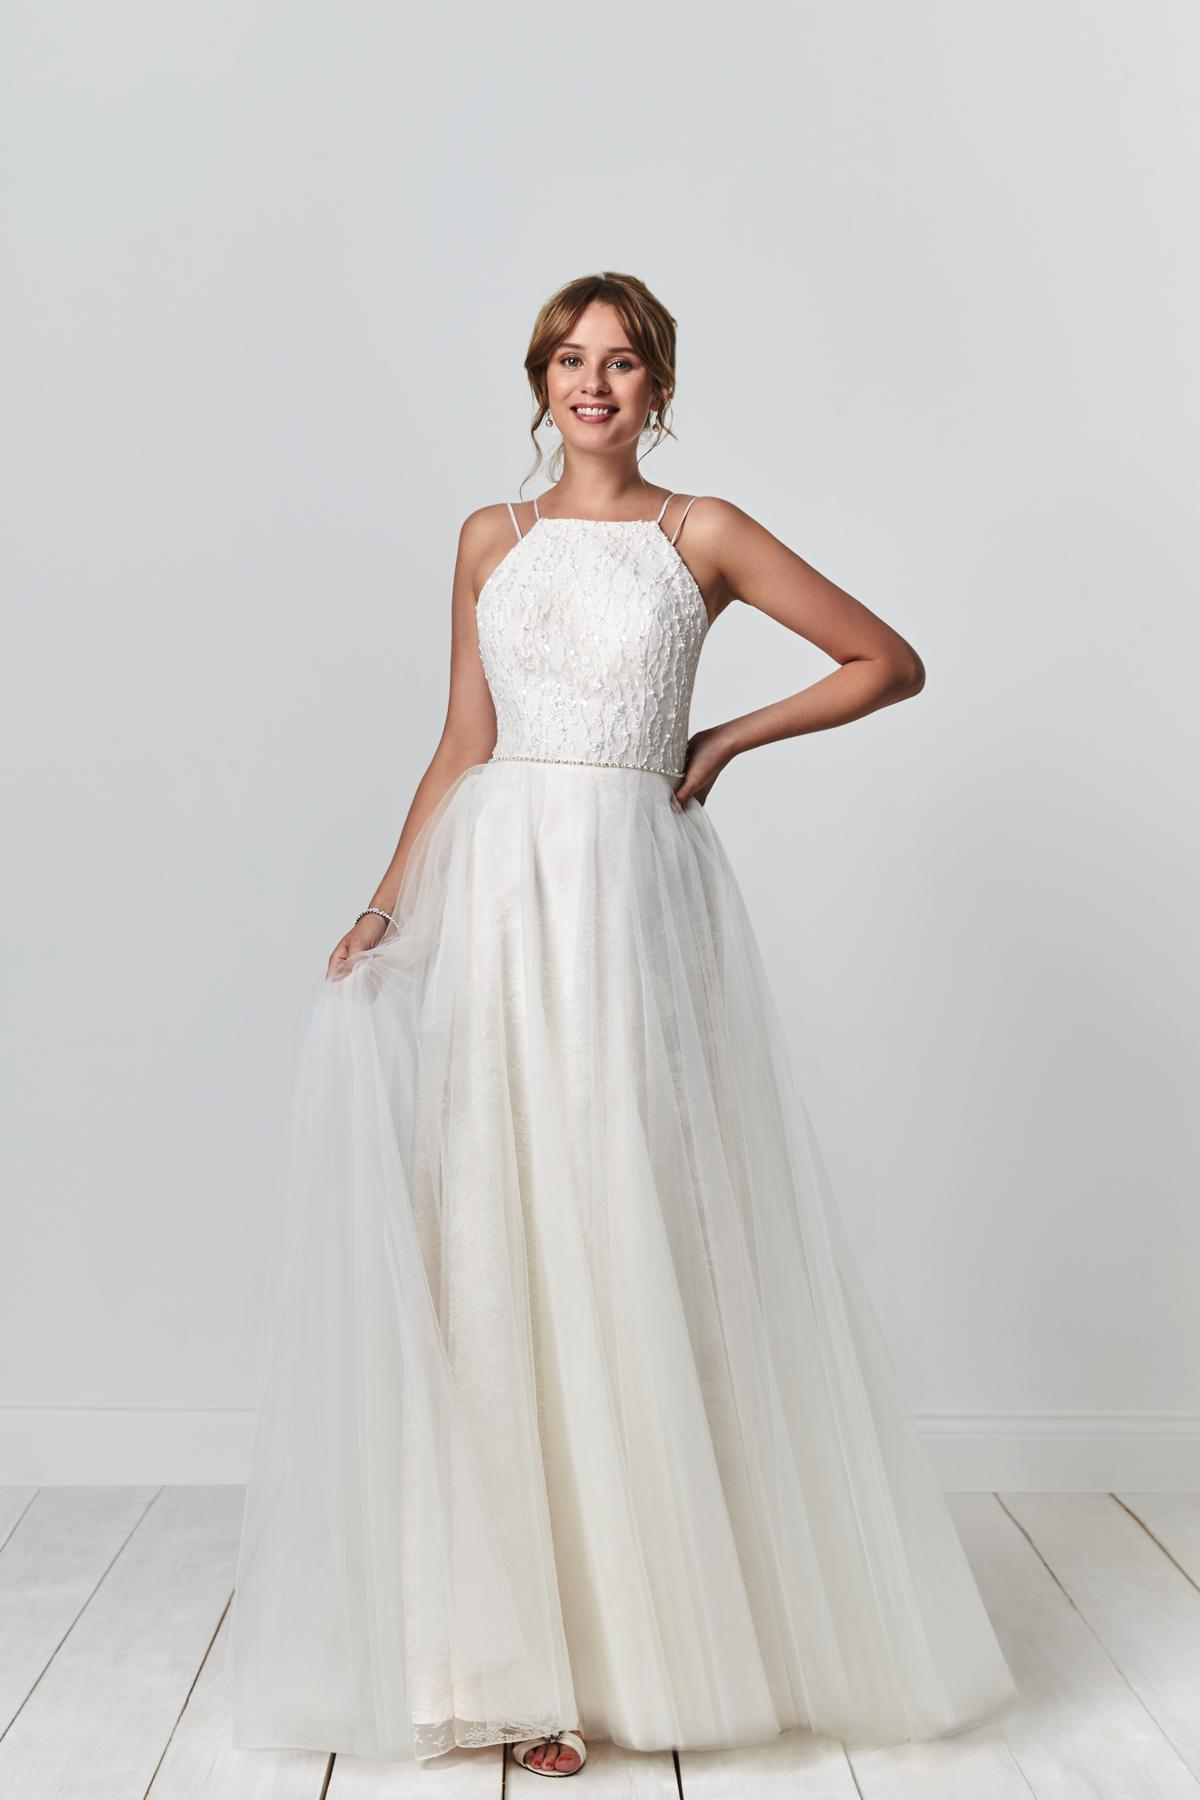 79a534b1d Maia by Olivia Rose - Find Your Dream Dress